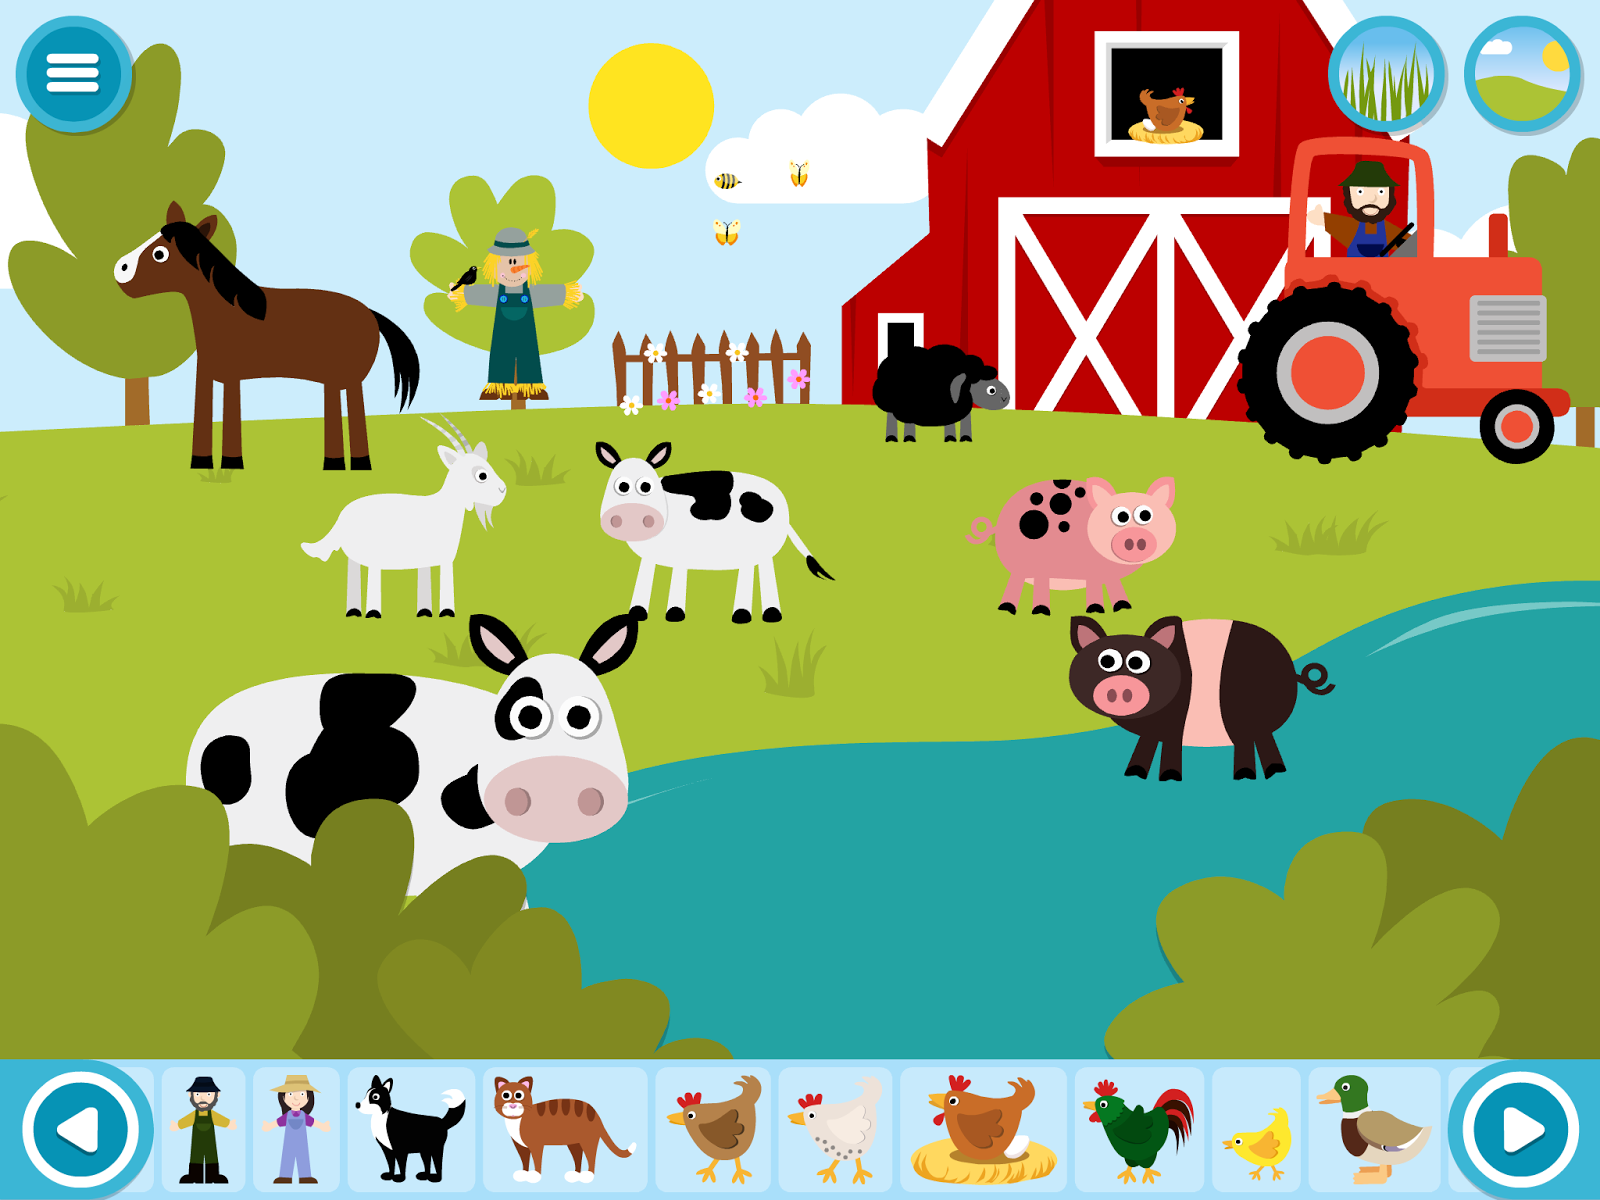 Farm scene clipart 20 free Cliparts | Download images on ...Farm Scene Clip Art Pictures